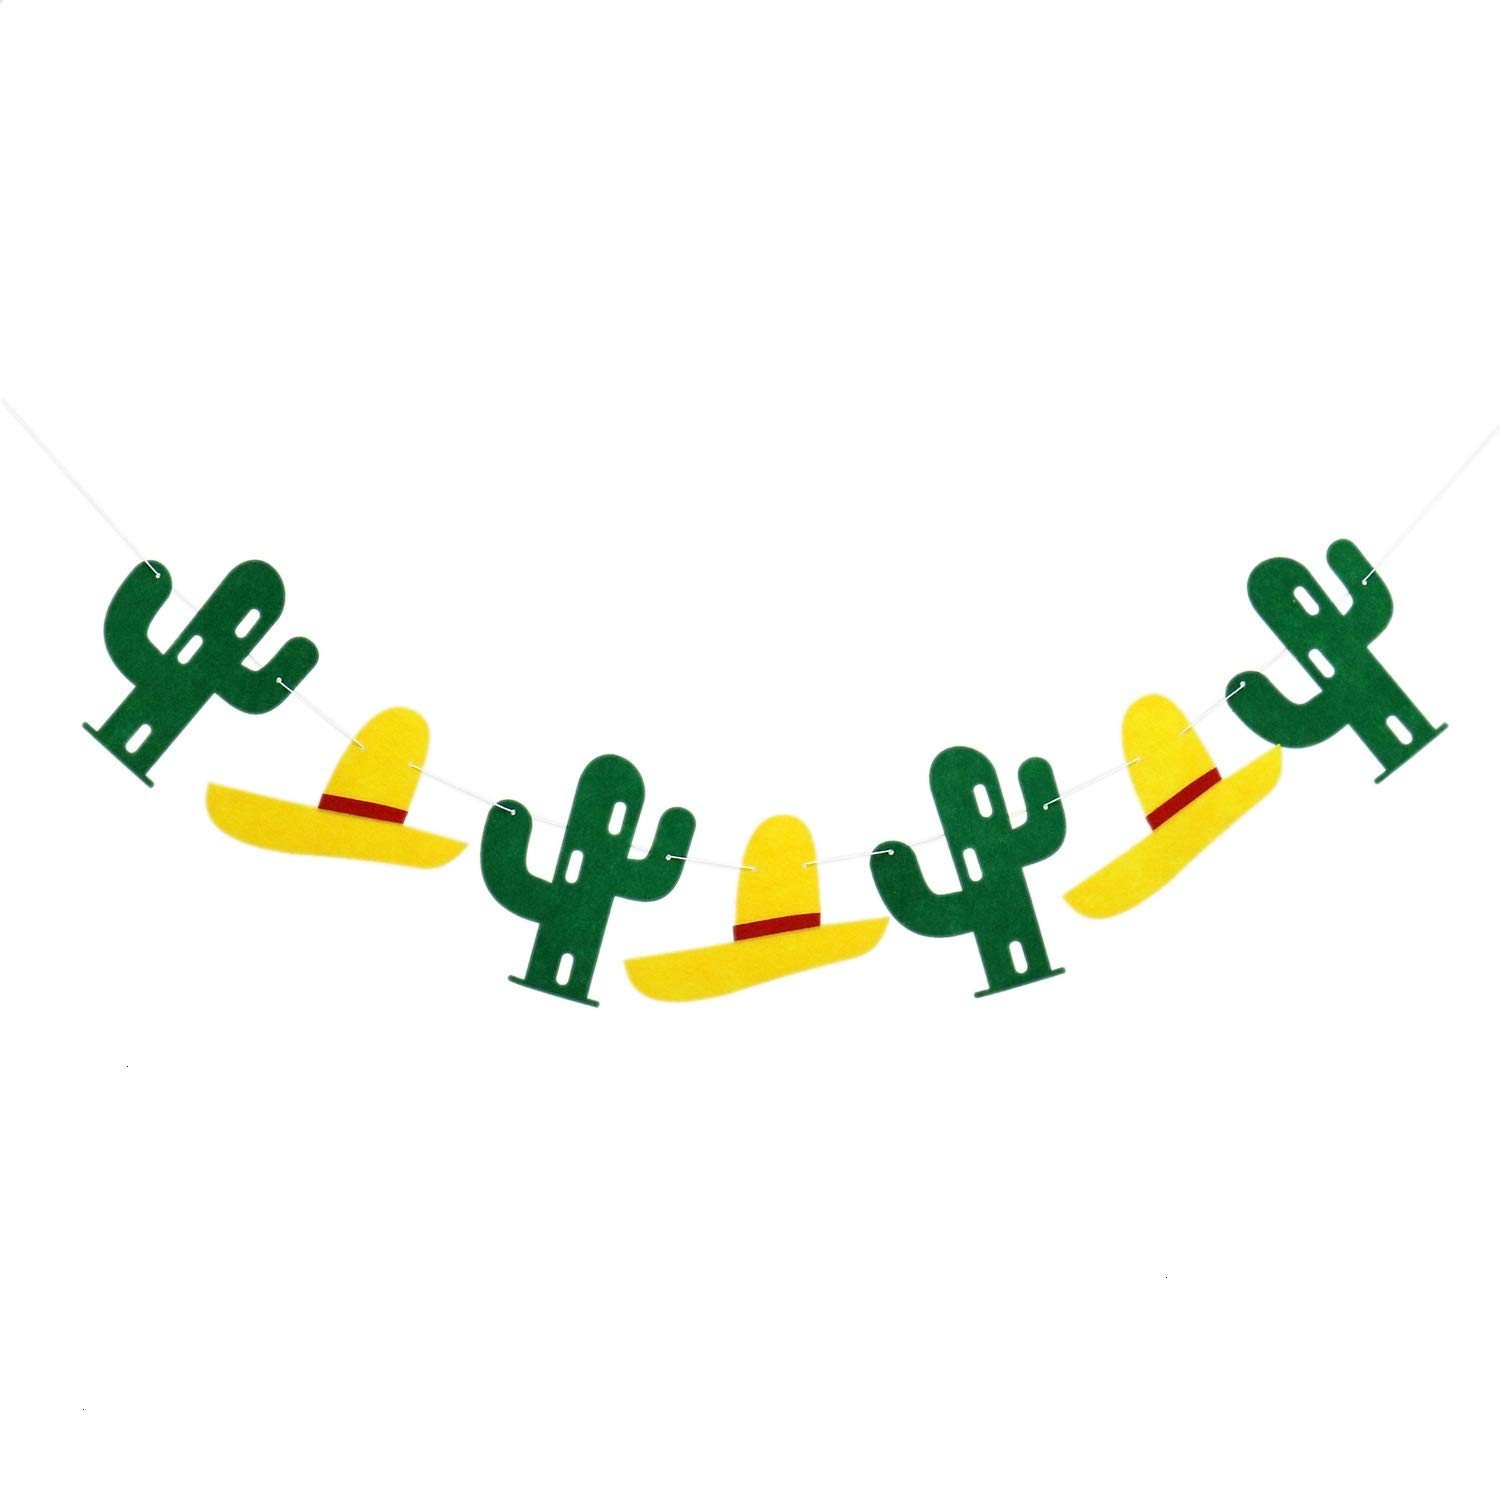 Buorsa 2 Sets Cactus Banners Decoration Summer Luau Hawaii Party Supplies Non-Woven Fabric Garland Banner for Luau Hawaii Birthday Party Festival Decoration